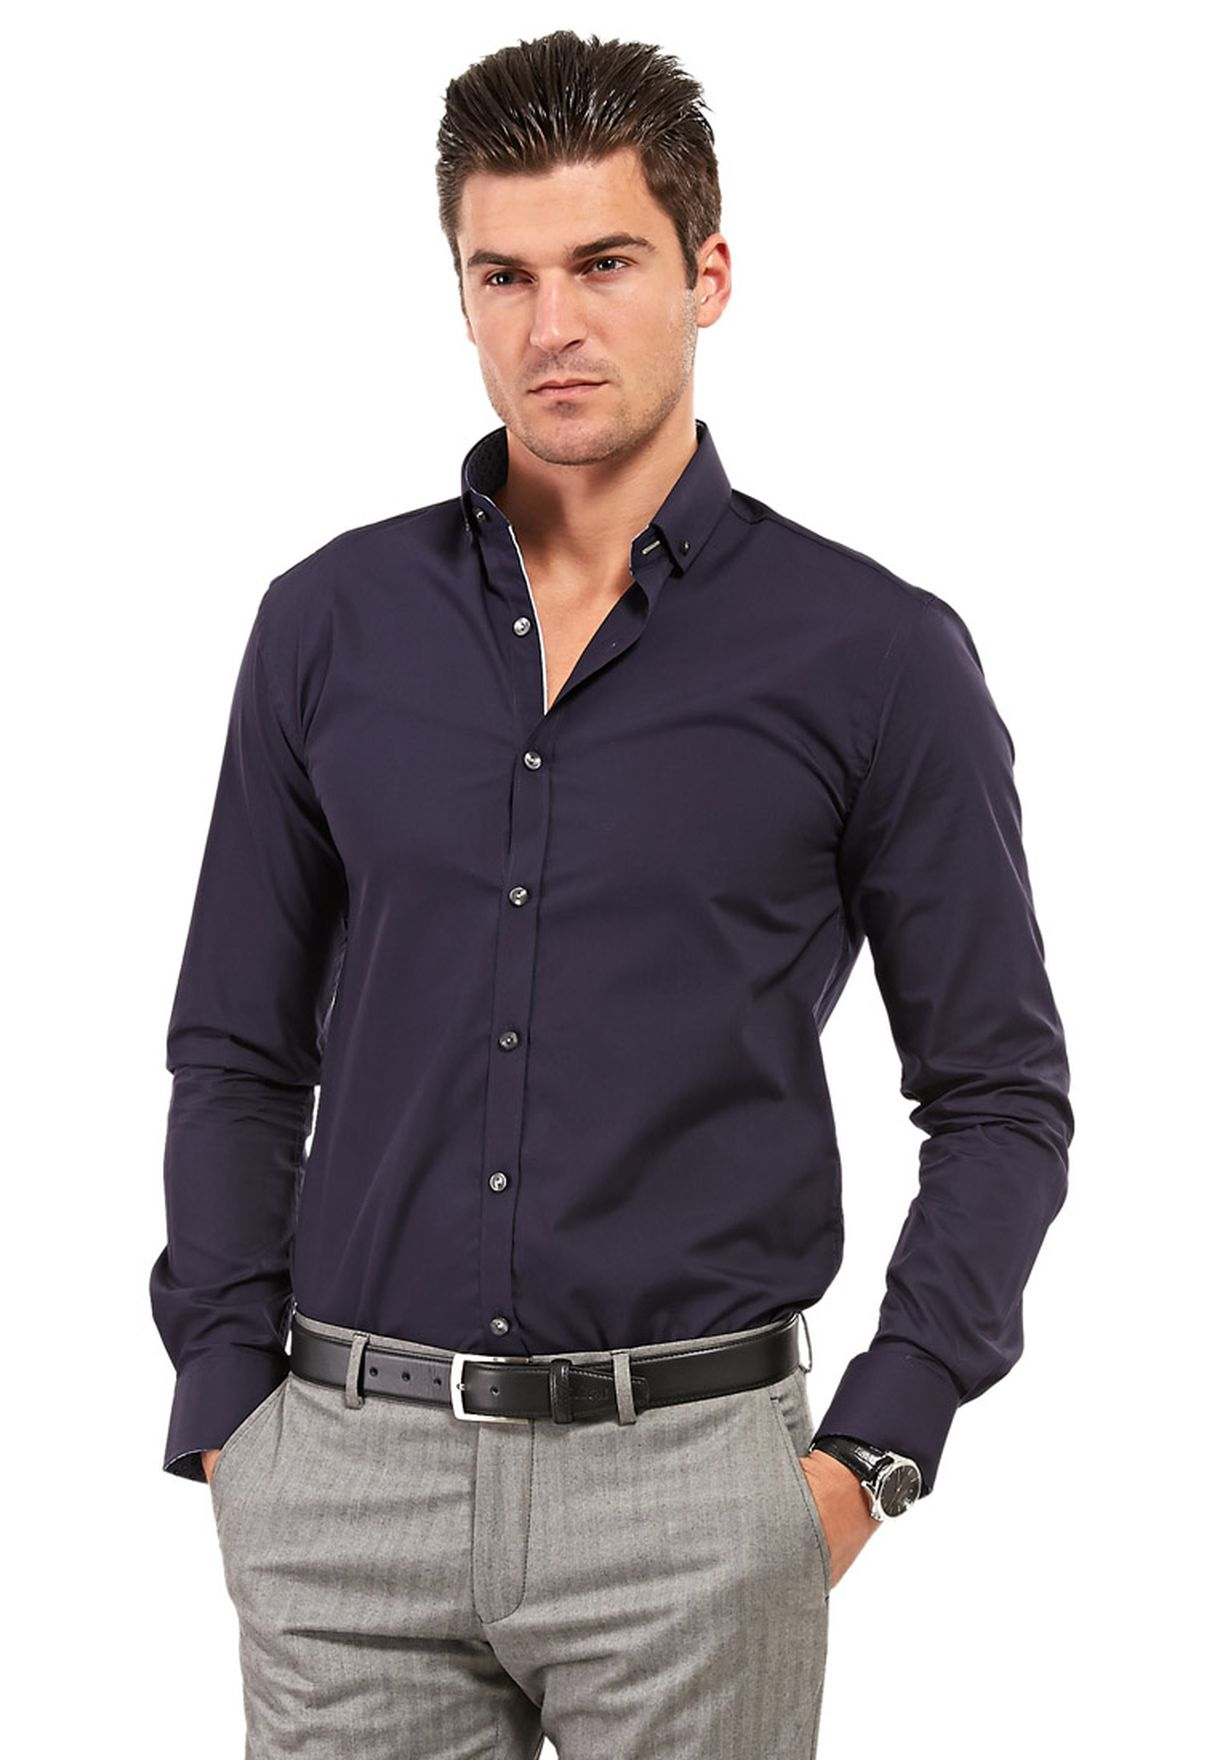 e8d20be2 Shop Selectedhomme navy One Mix Mile Shirt Ls Noos F for Men in ...